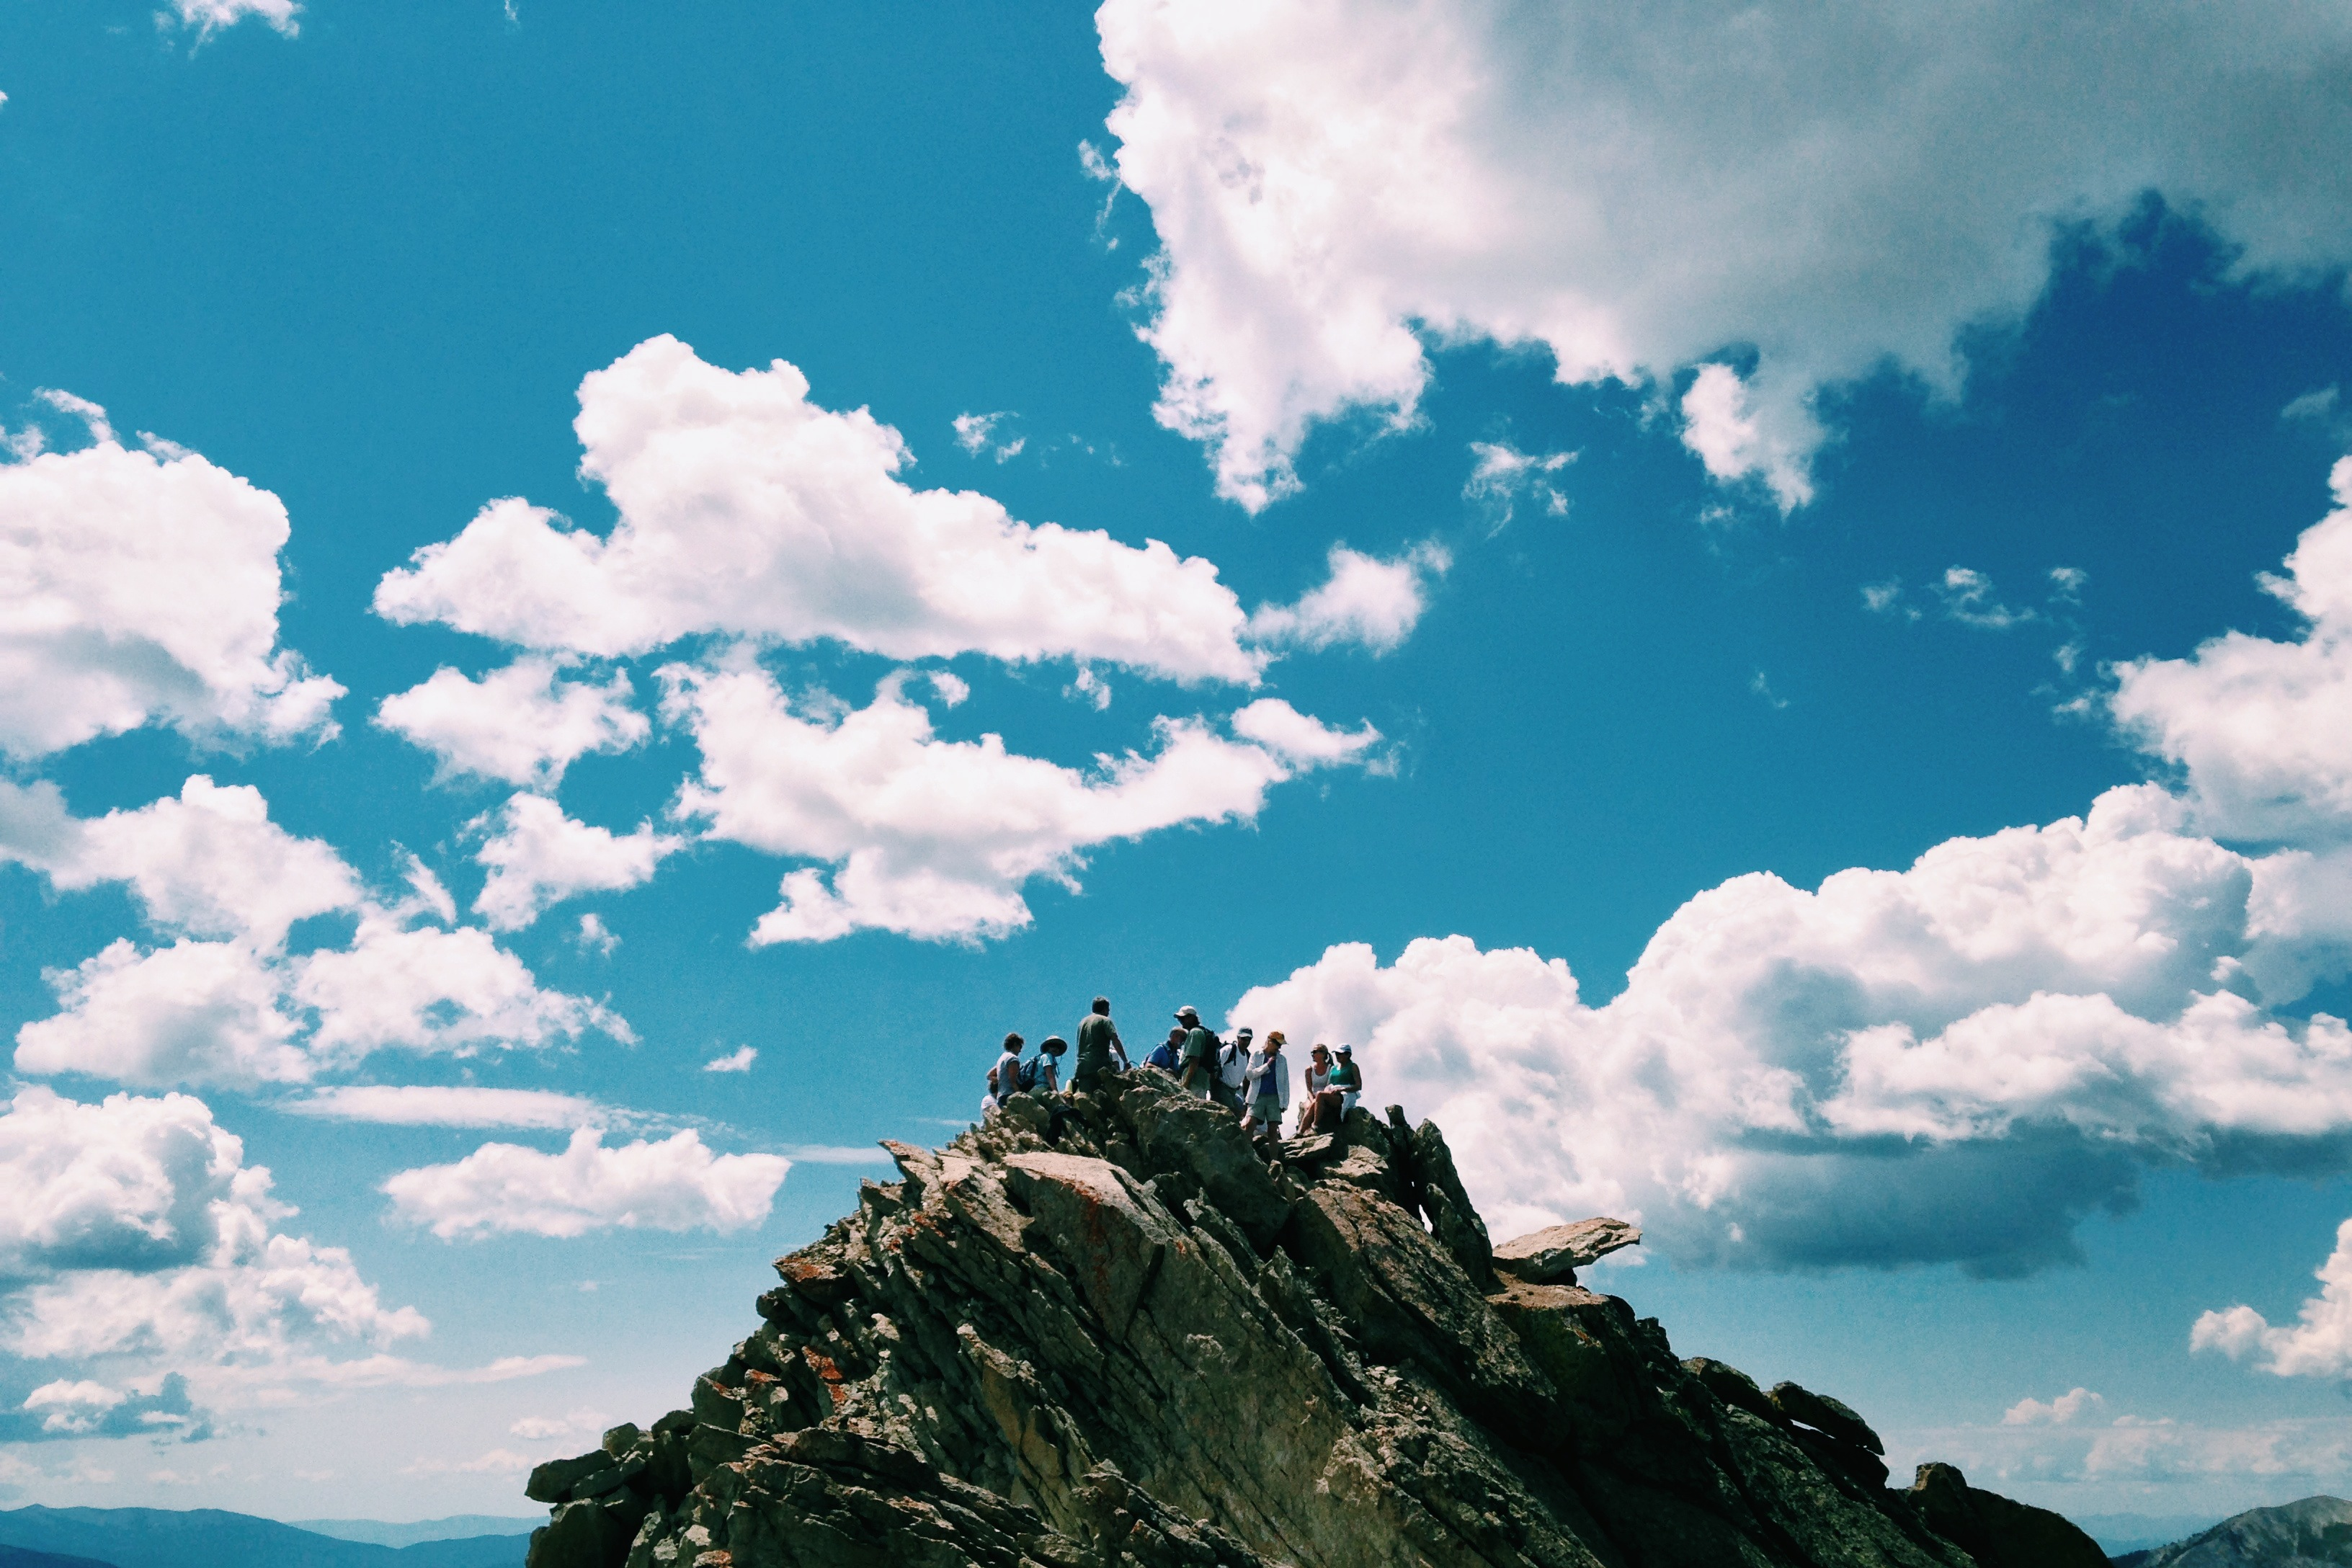 nature-sunny-people-clouds.jpg